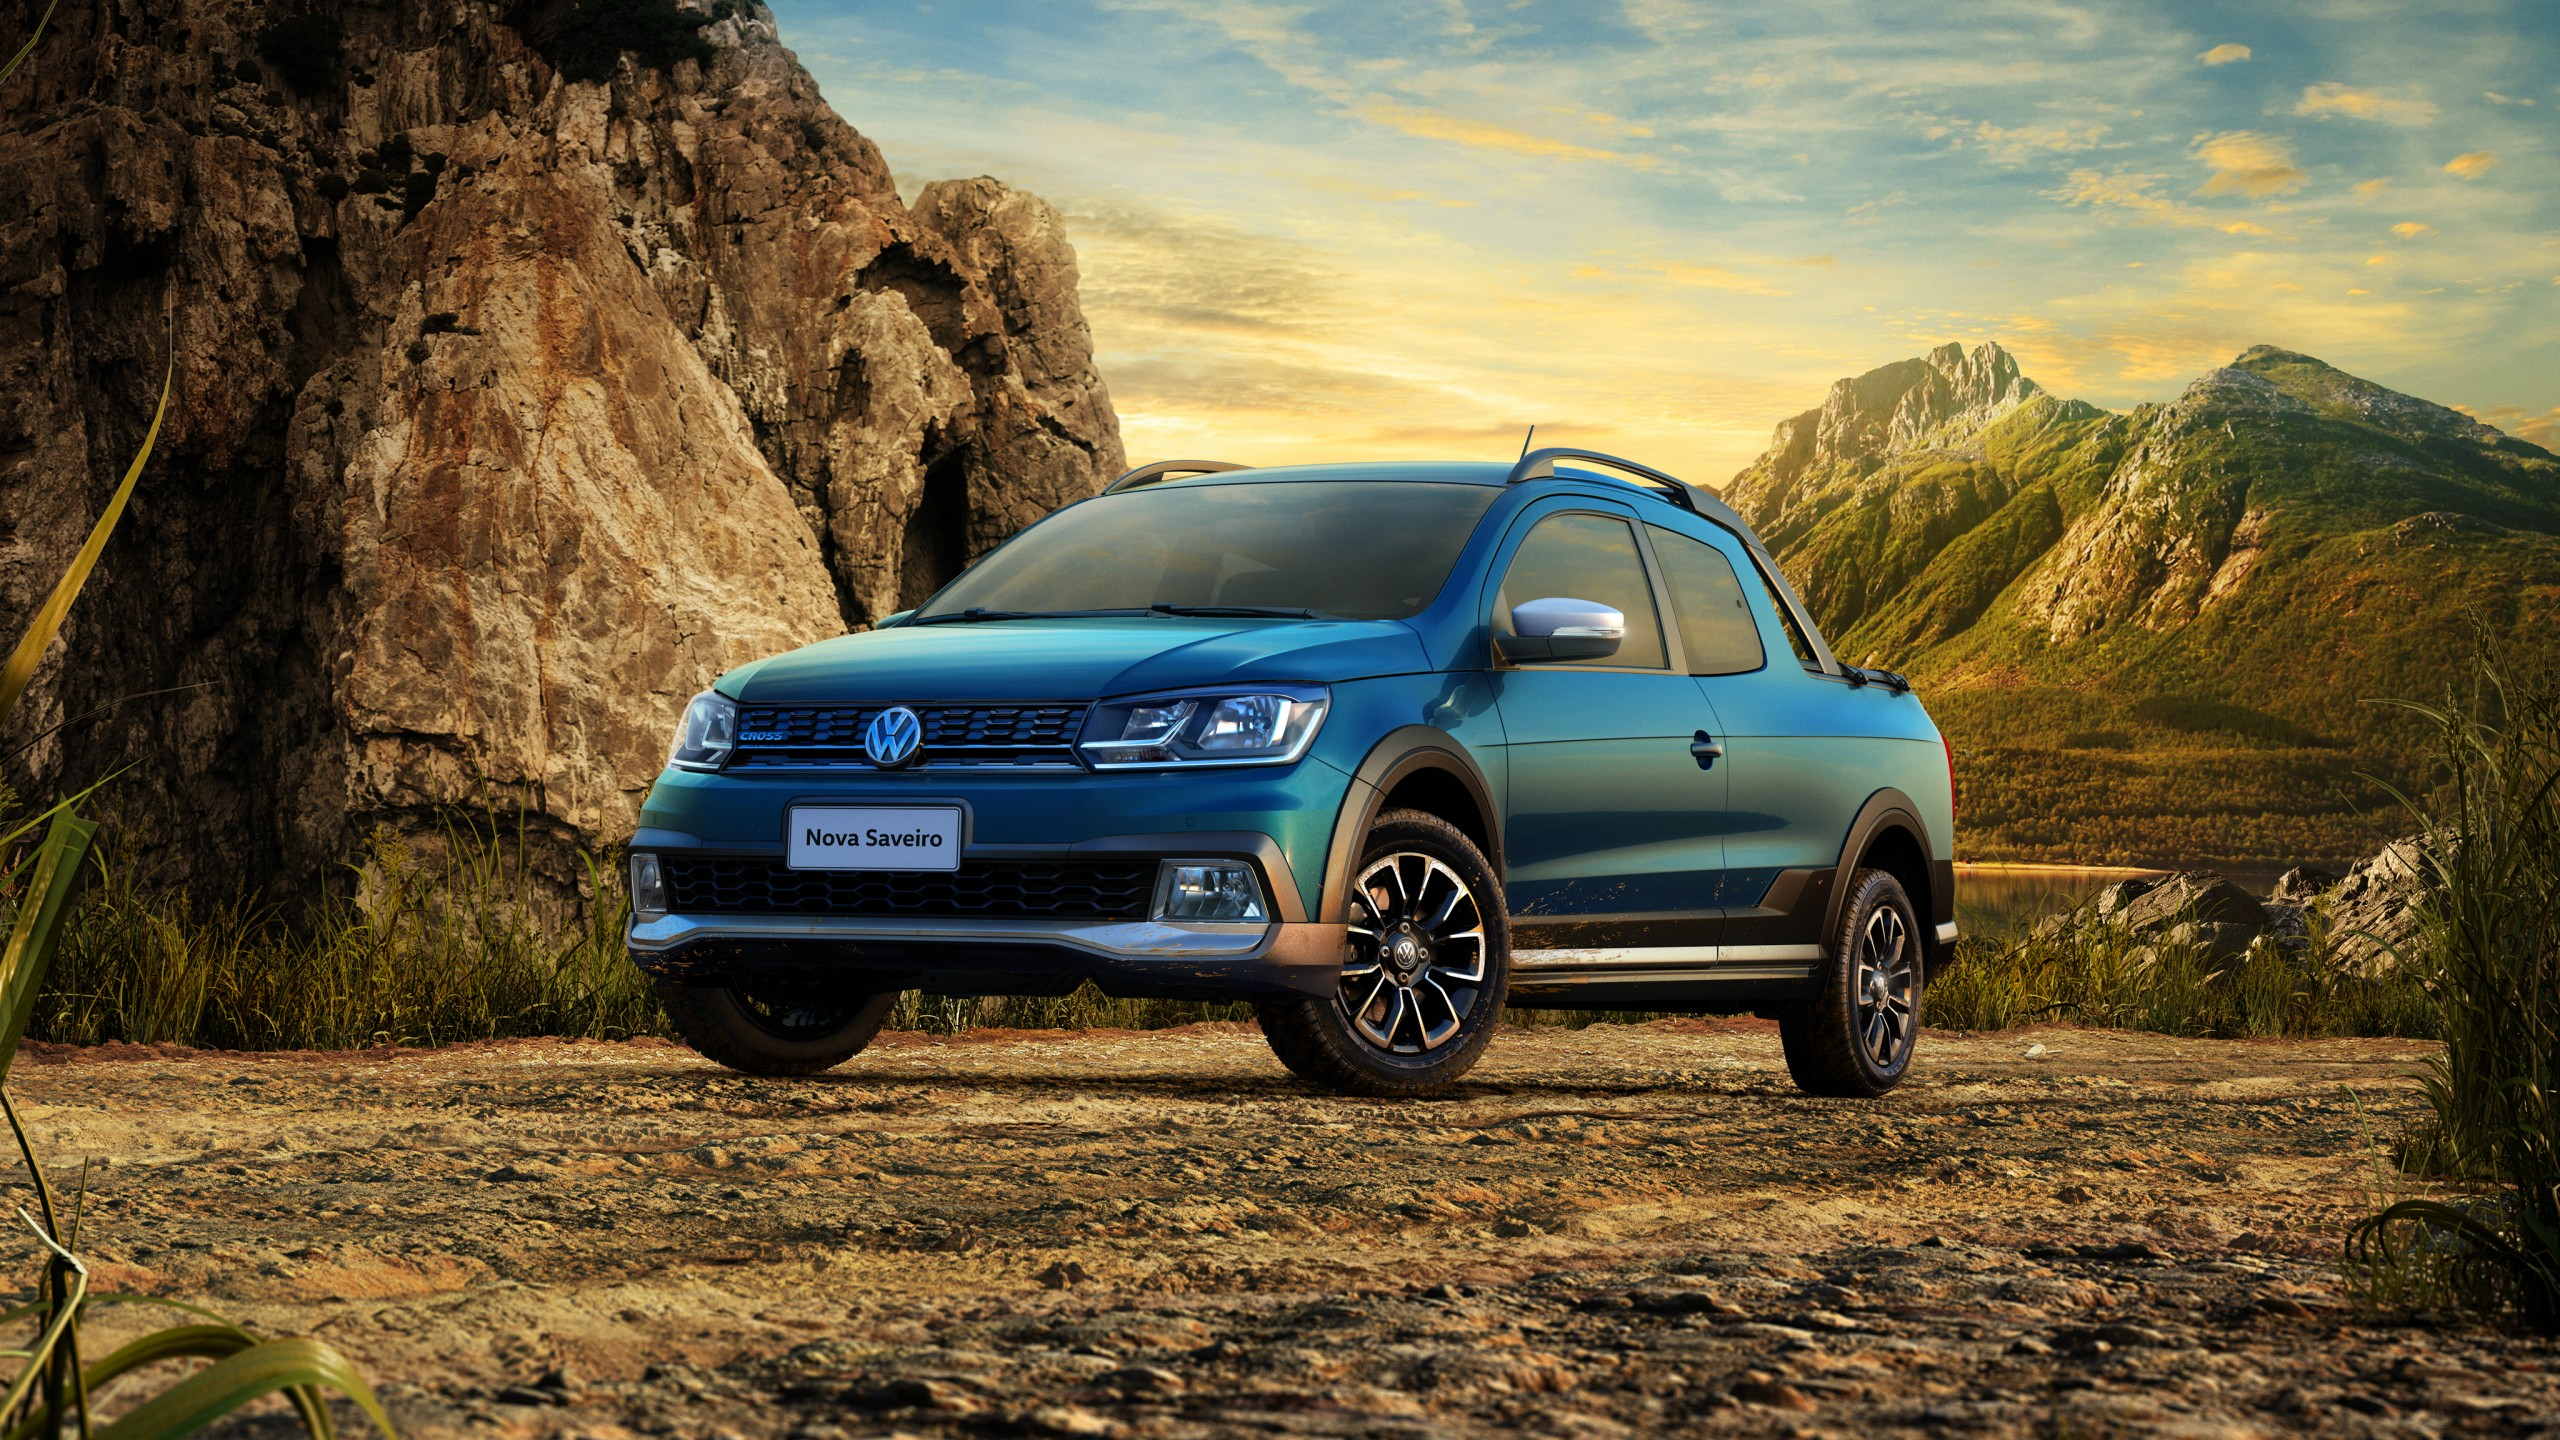 Wallpaper Volkswagen Saveiro Cross CD pickup blue Cars Bikes 2560x1440